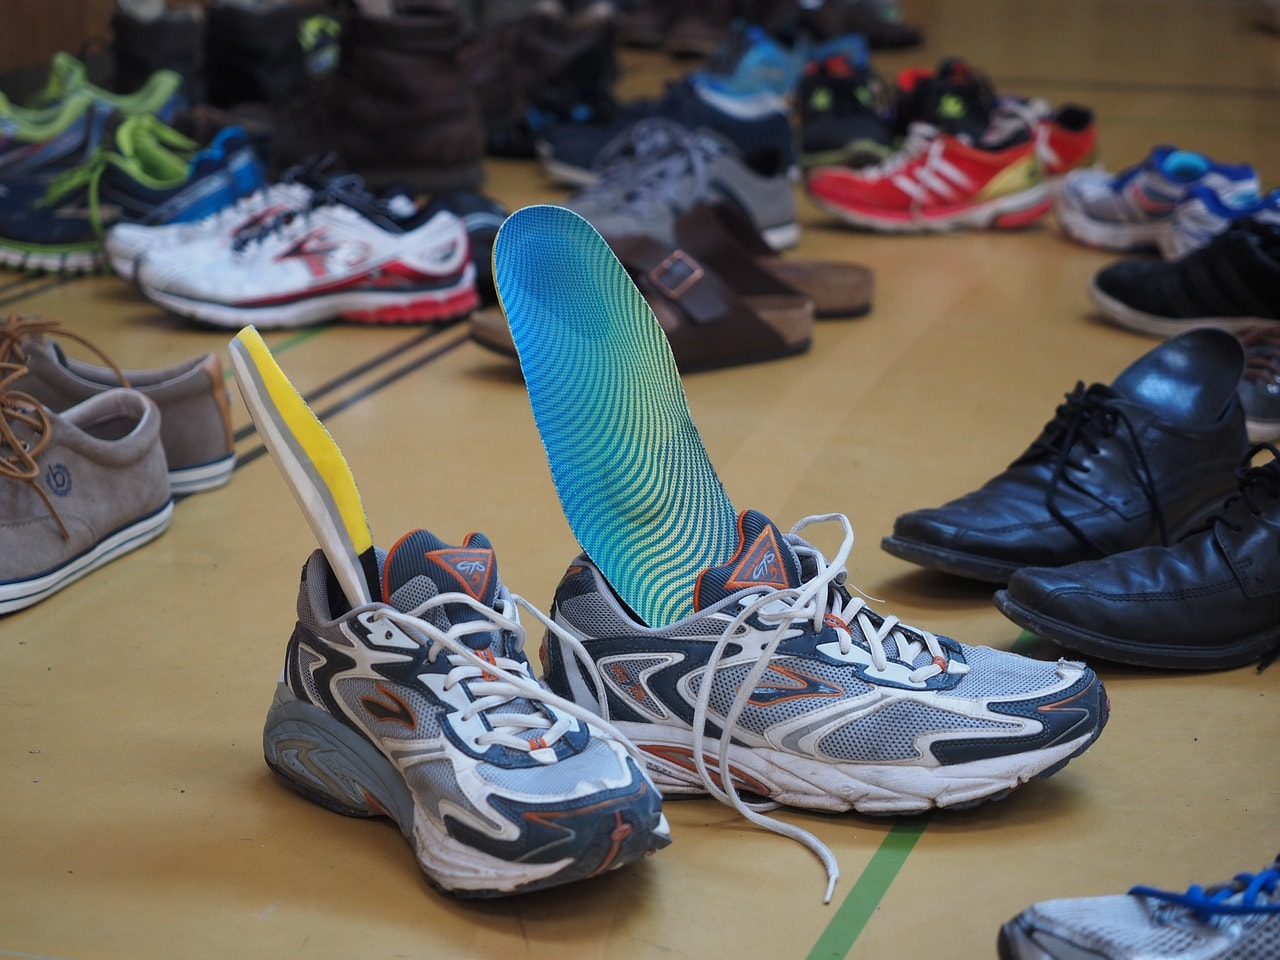 Sports insoles inside sneakers.